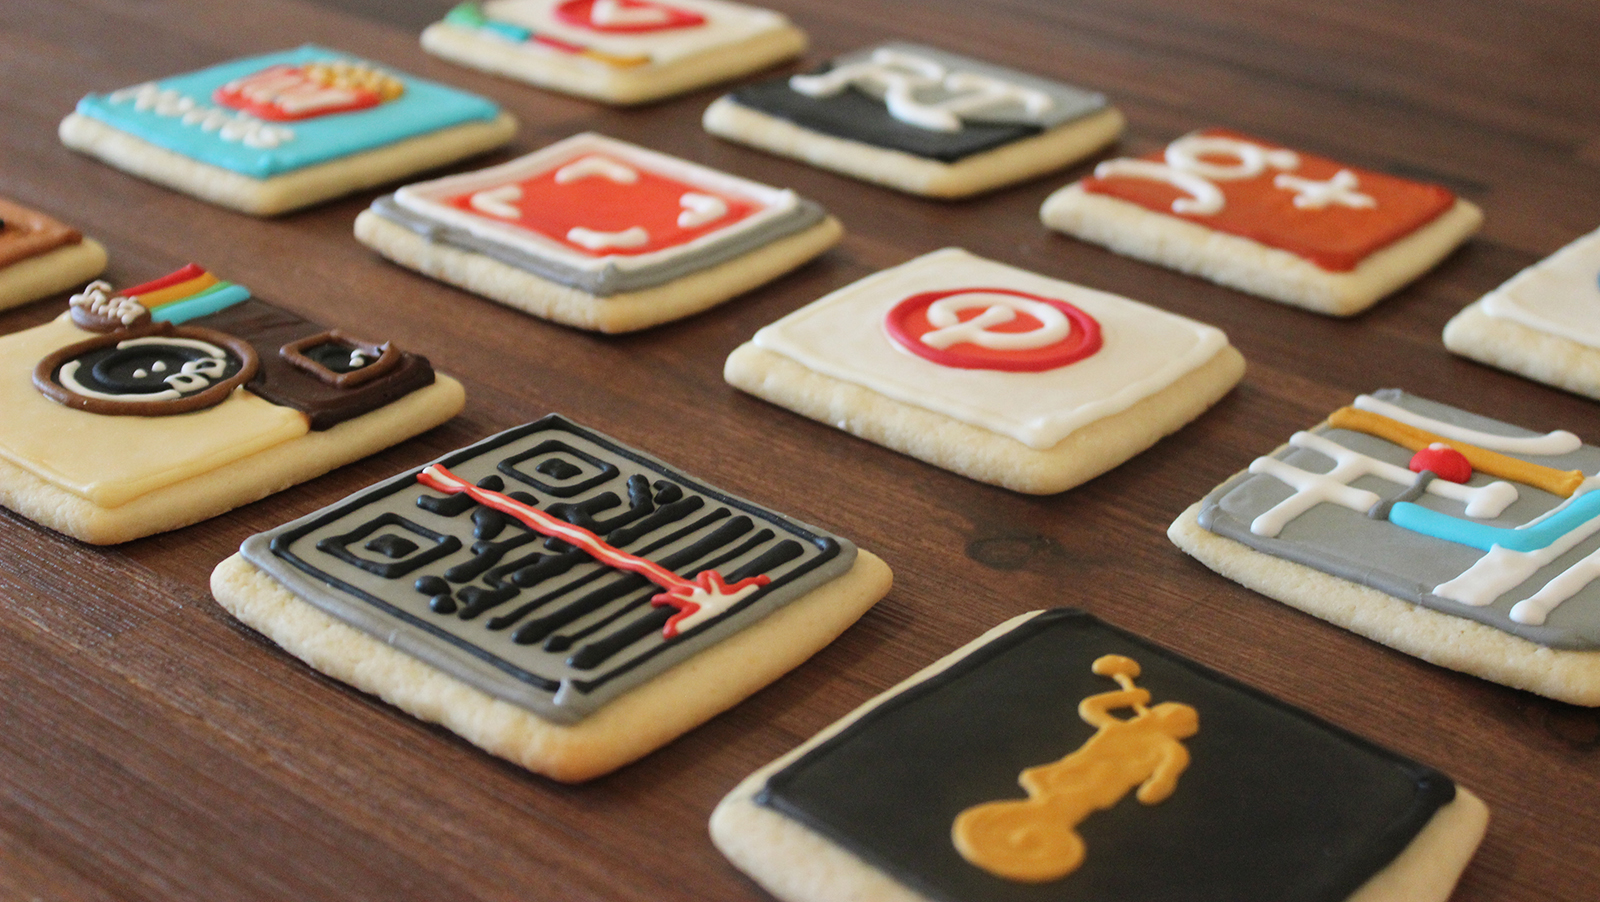 iOS-App-Icon-Cookies-all-Scan